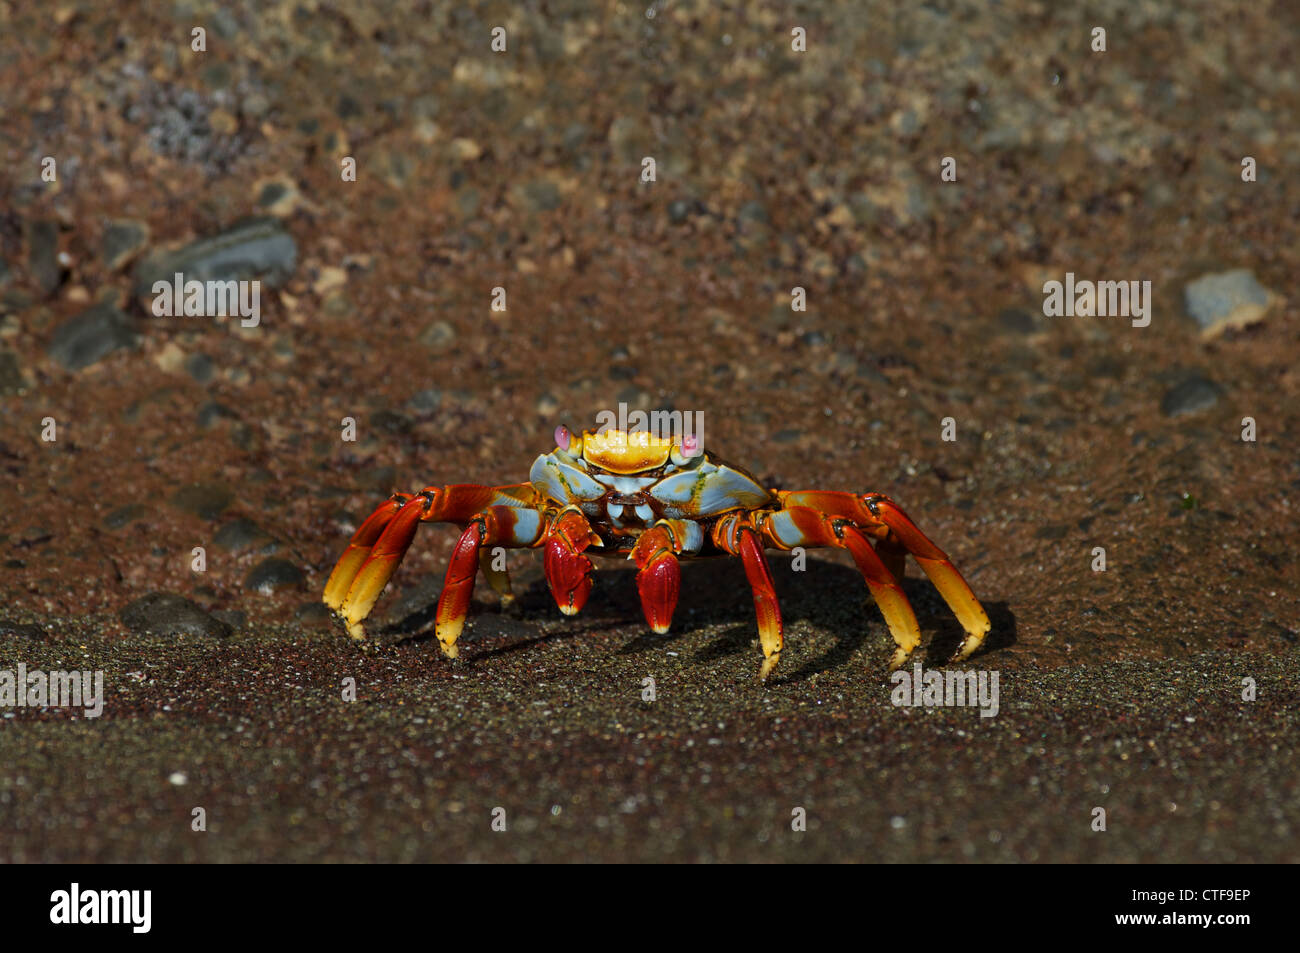 A Sally Lightfoot Crab (Grapsus grapsus) on the volcanic shoreline of Floreana Island in the Galapagos Islands, - Stock Image